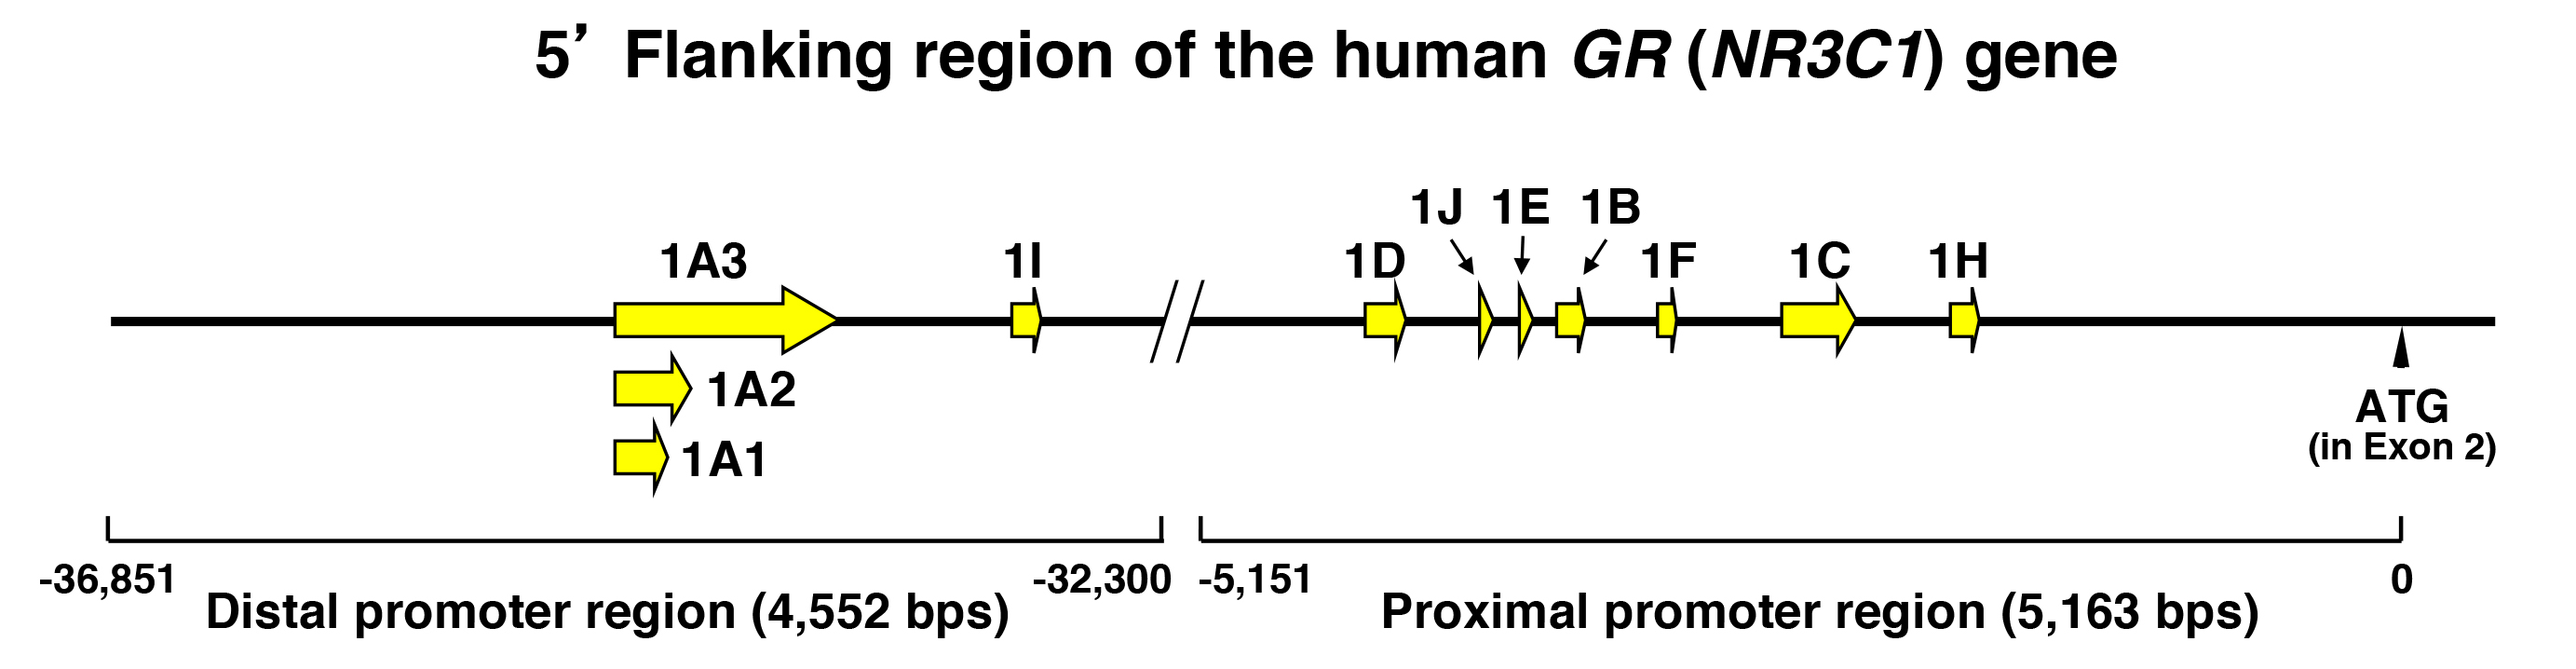 Chapters Archive Page 15 Of 34 Endotext Whitehead Gas Valve Wiring Diagram Figure 7 The Human H Gr Nr3c1 Gene Has 11 Different Promoters With Specific Exon 1 Sequences Hgr Harboring